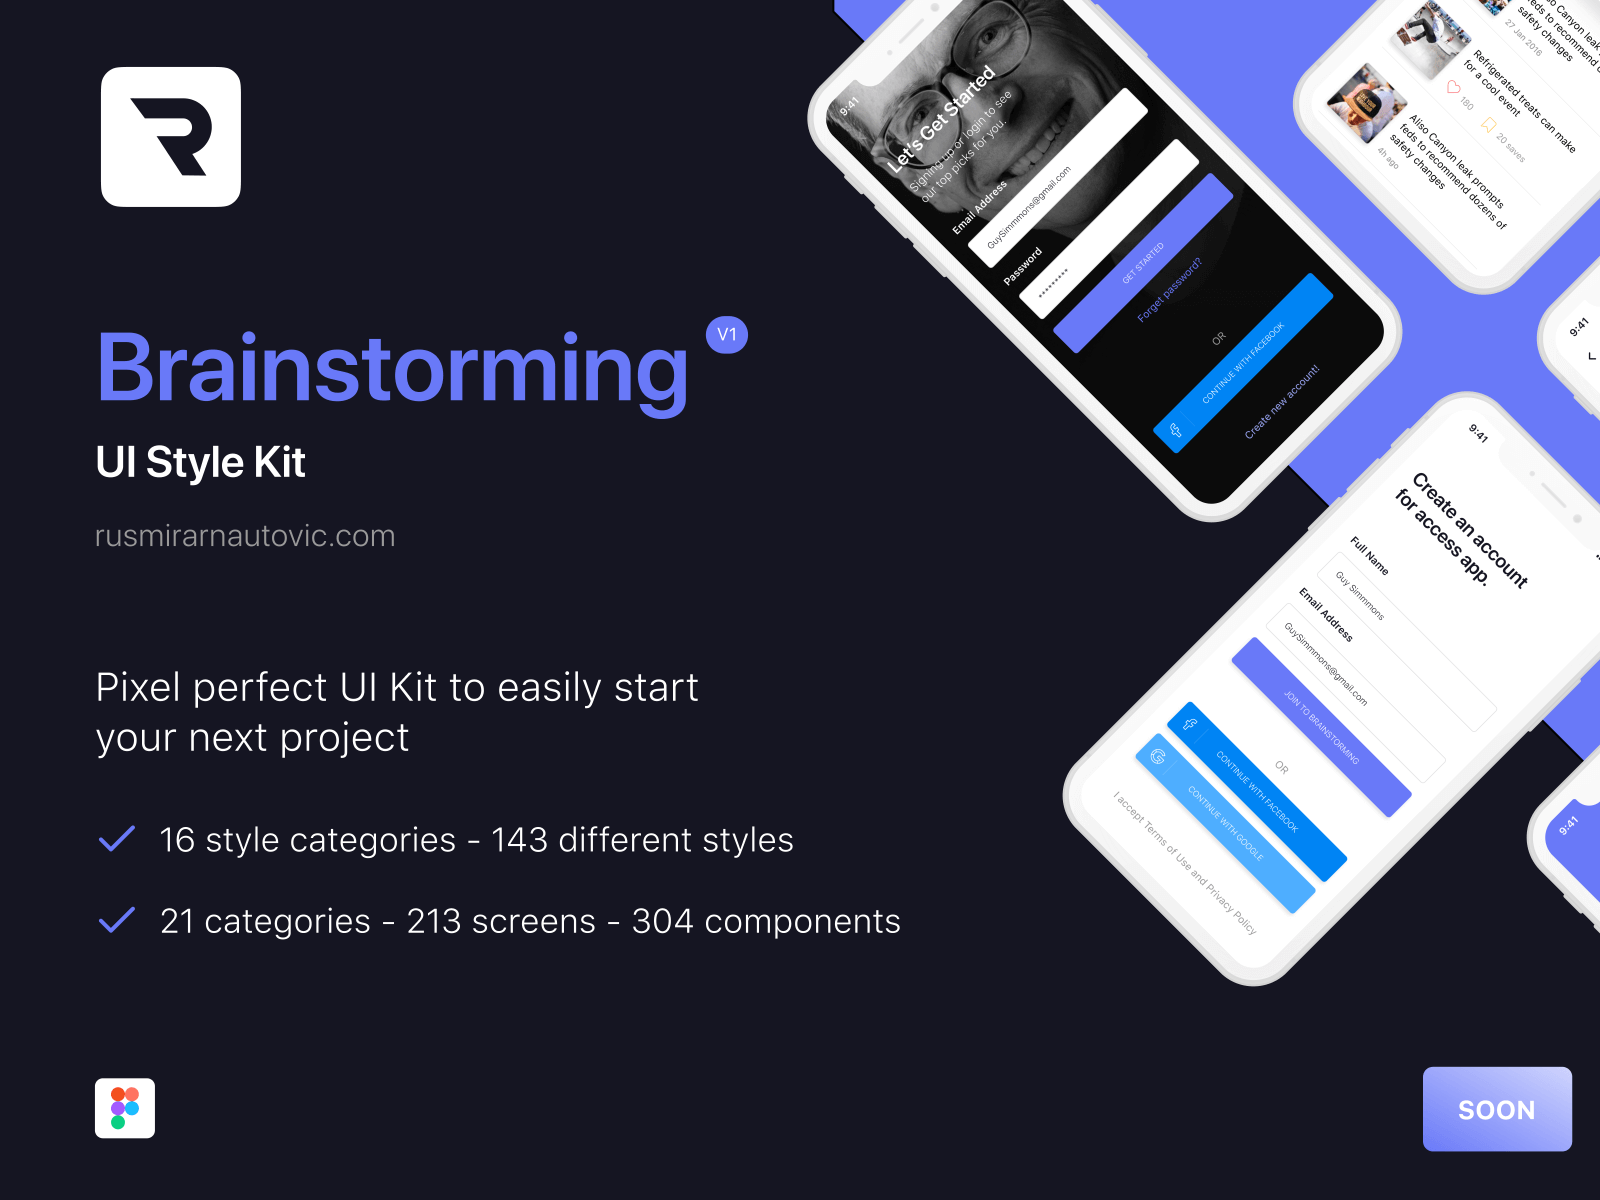 Brainstorming UI Style Kit cover image